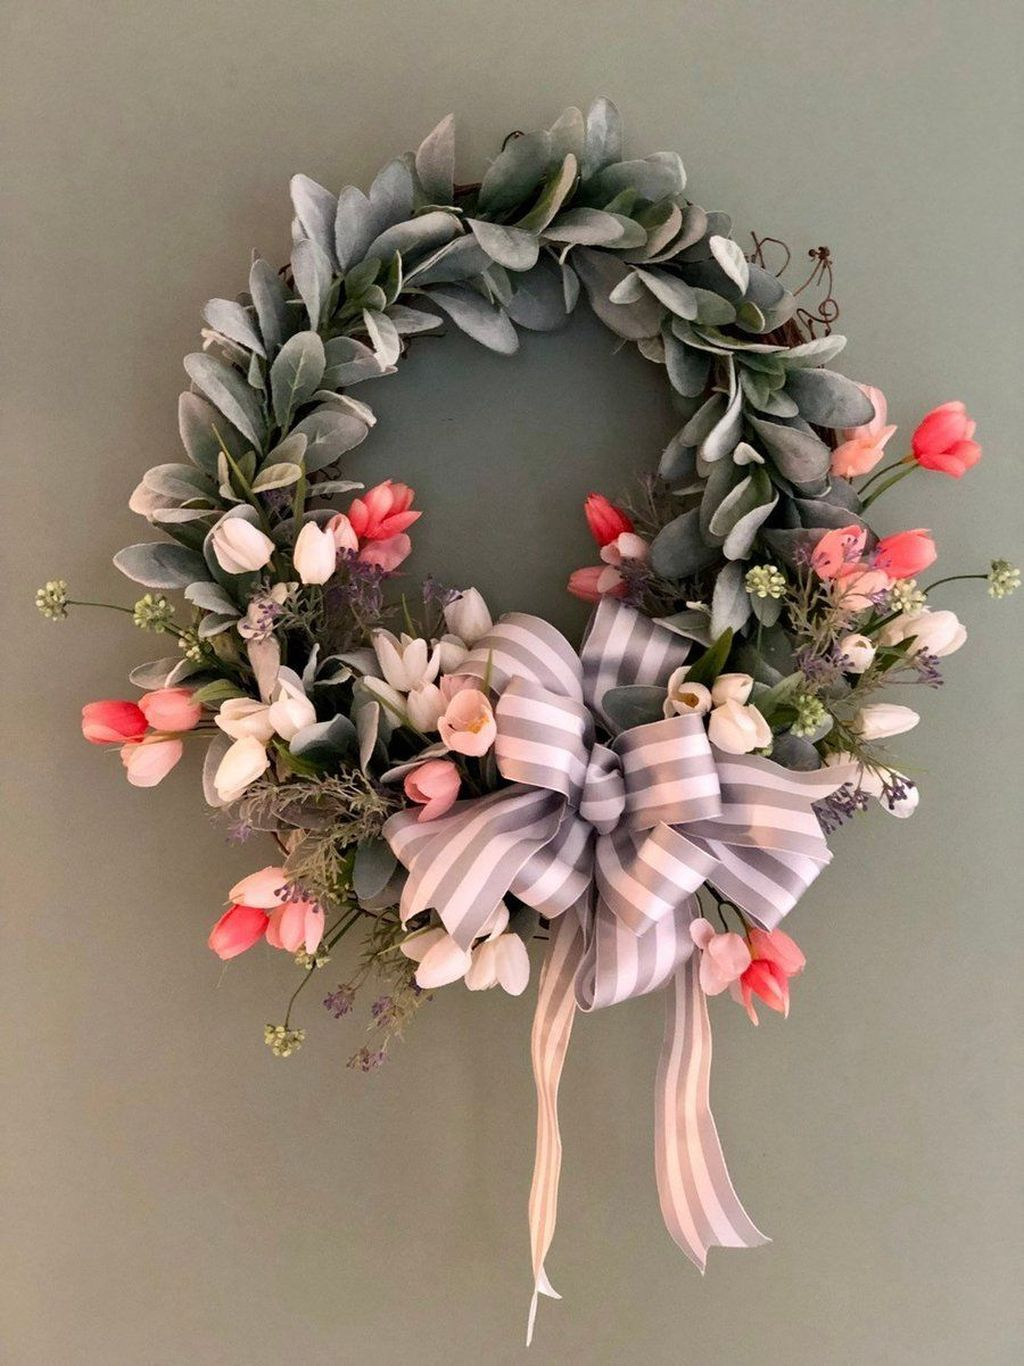 Fabulous Valentine Wreath Design Ideas FOr Your Front Door Decor 37